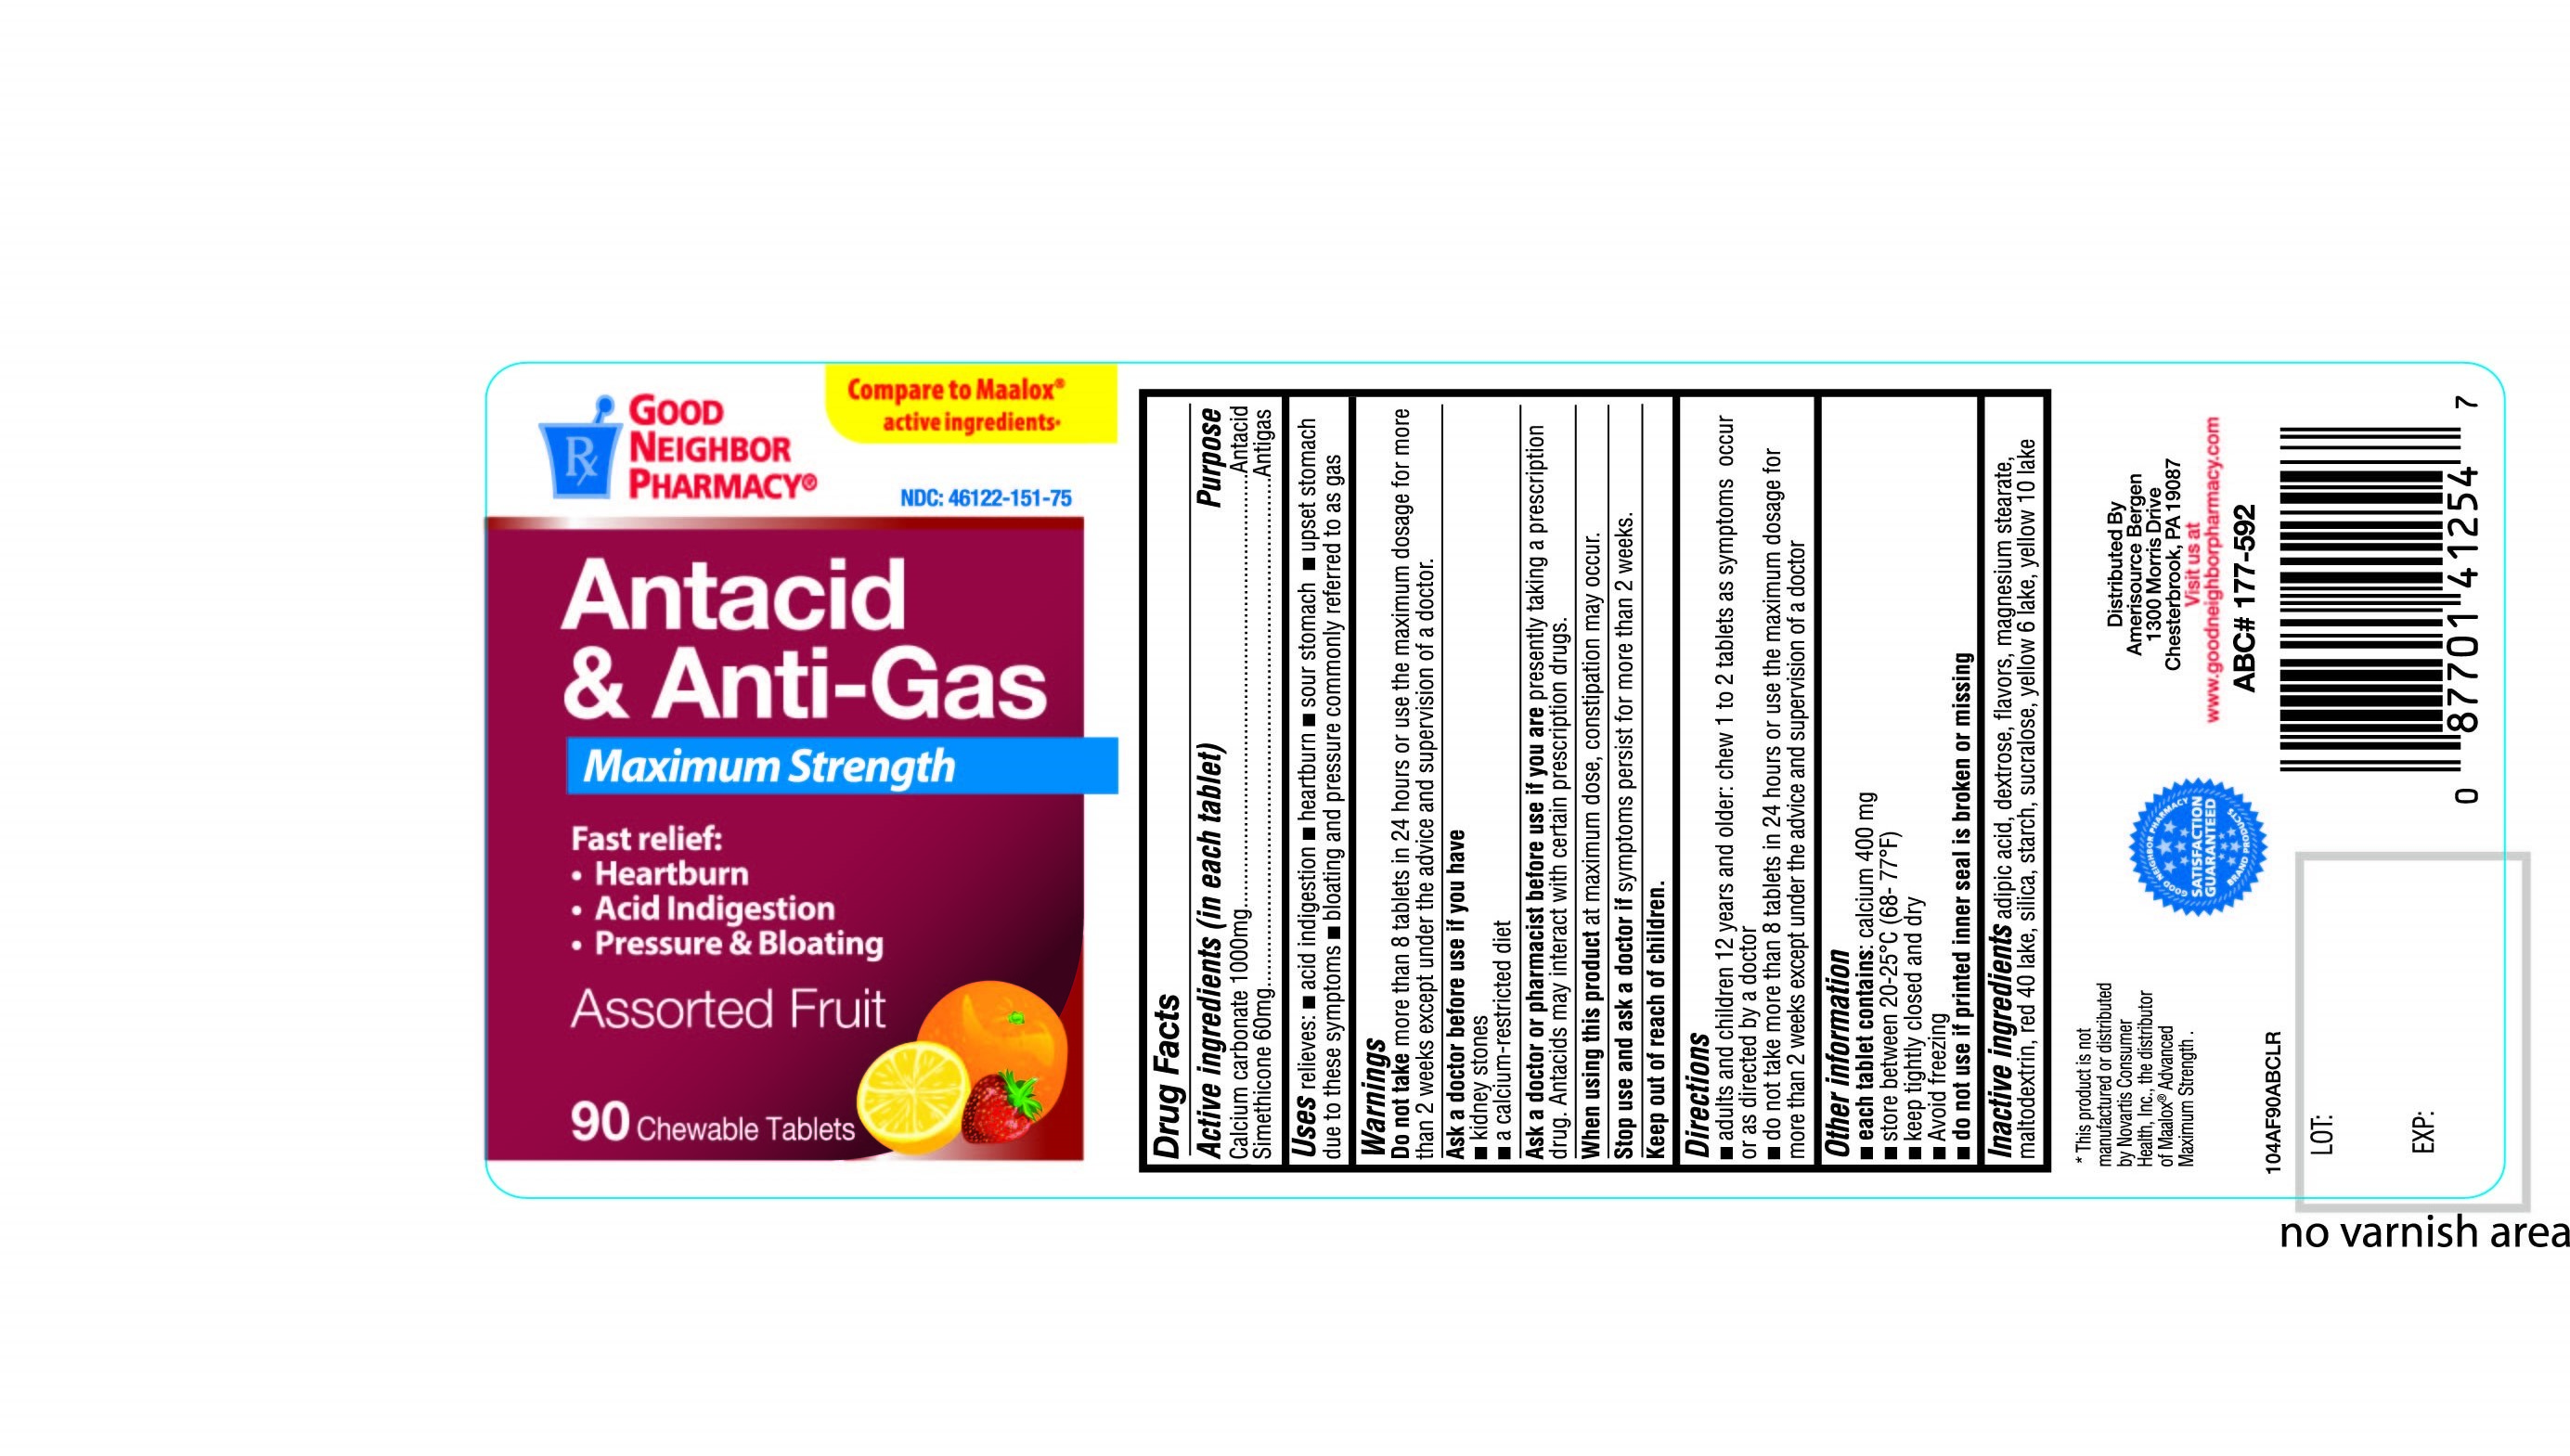 Maximum Strength Antacid and Antigas Assorted Fruit 90 Chewable Tablets